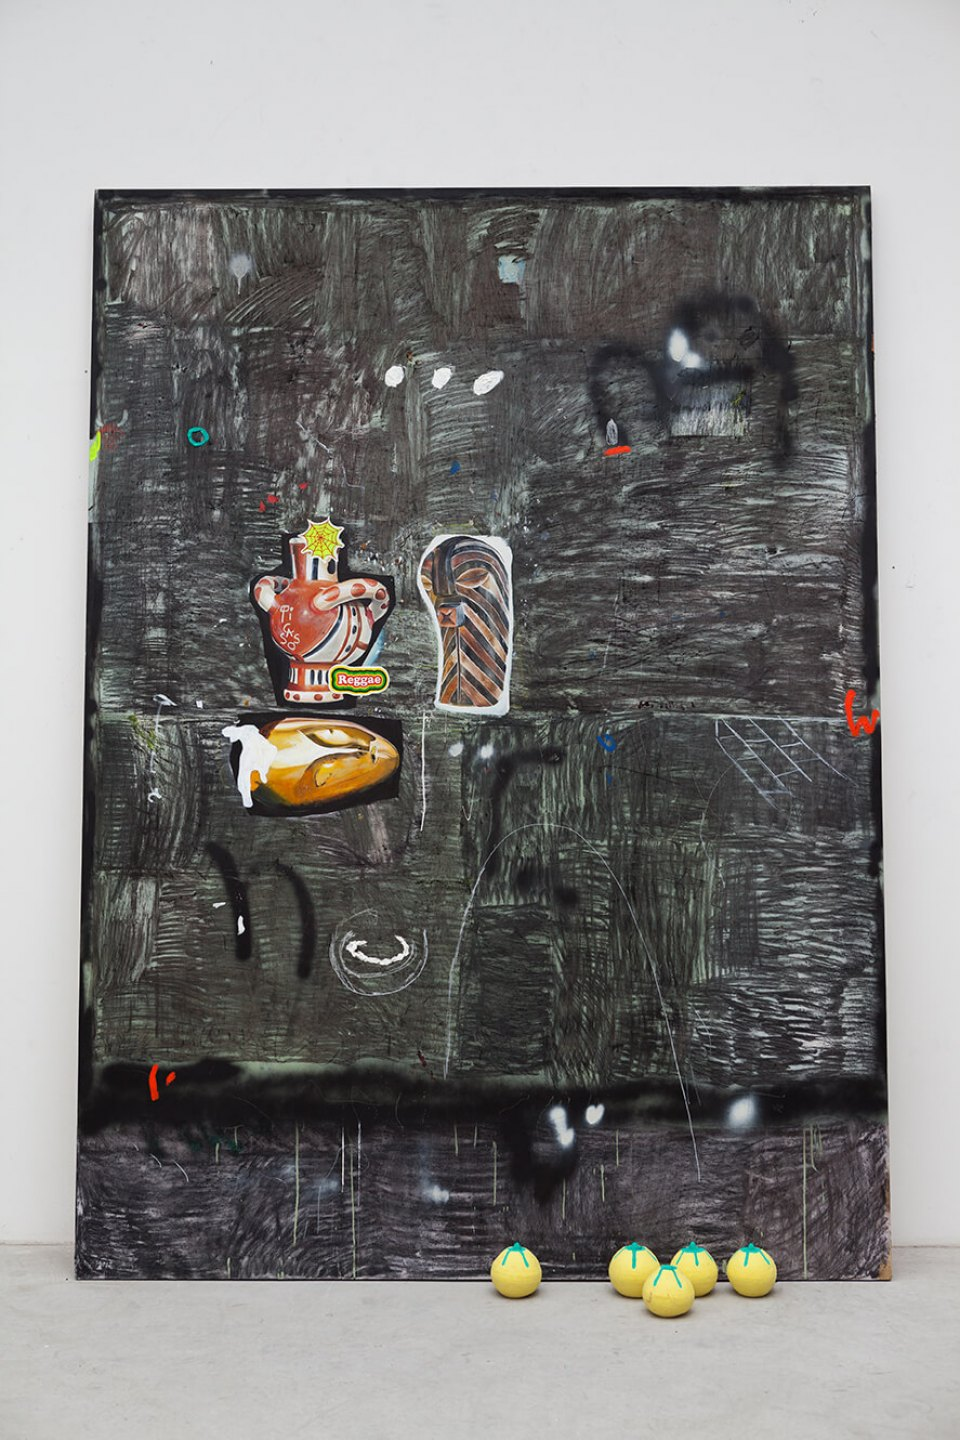 Paulo Nimer Pjota, <em>Democratic Republic of the Congo part. I,</em> 2015, acrylic, oil, pencil, pen, charcoal and pastel on wood, and ceramic objects, 218 × 160 × 43 cm - Mendes Wood DM